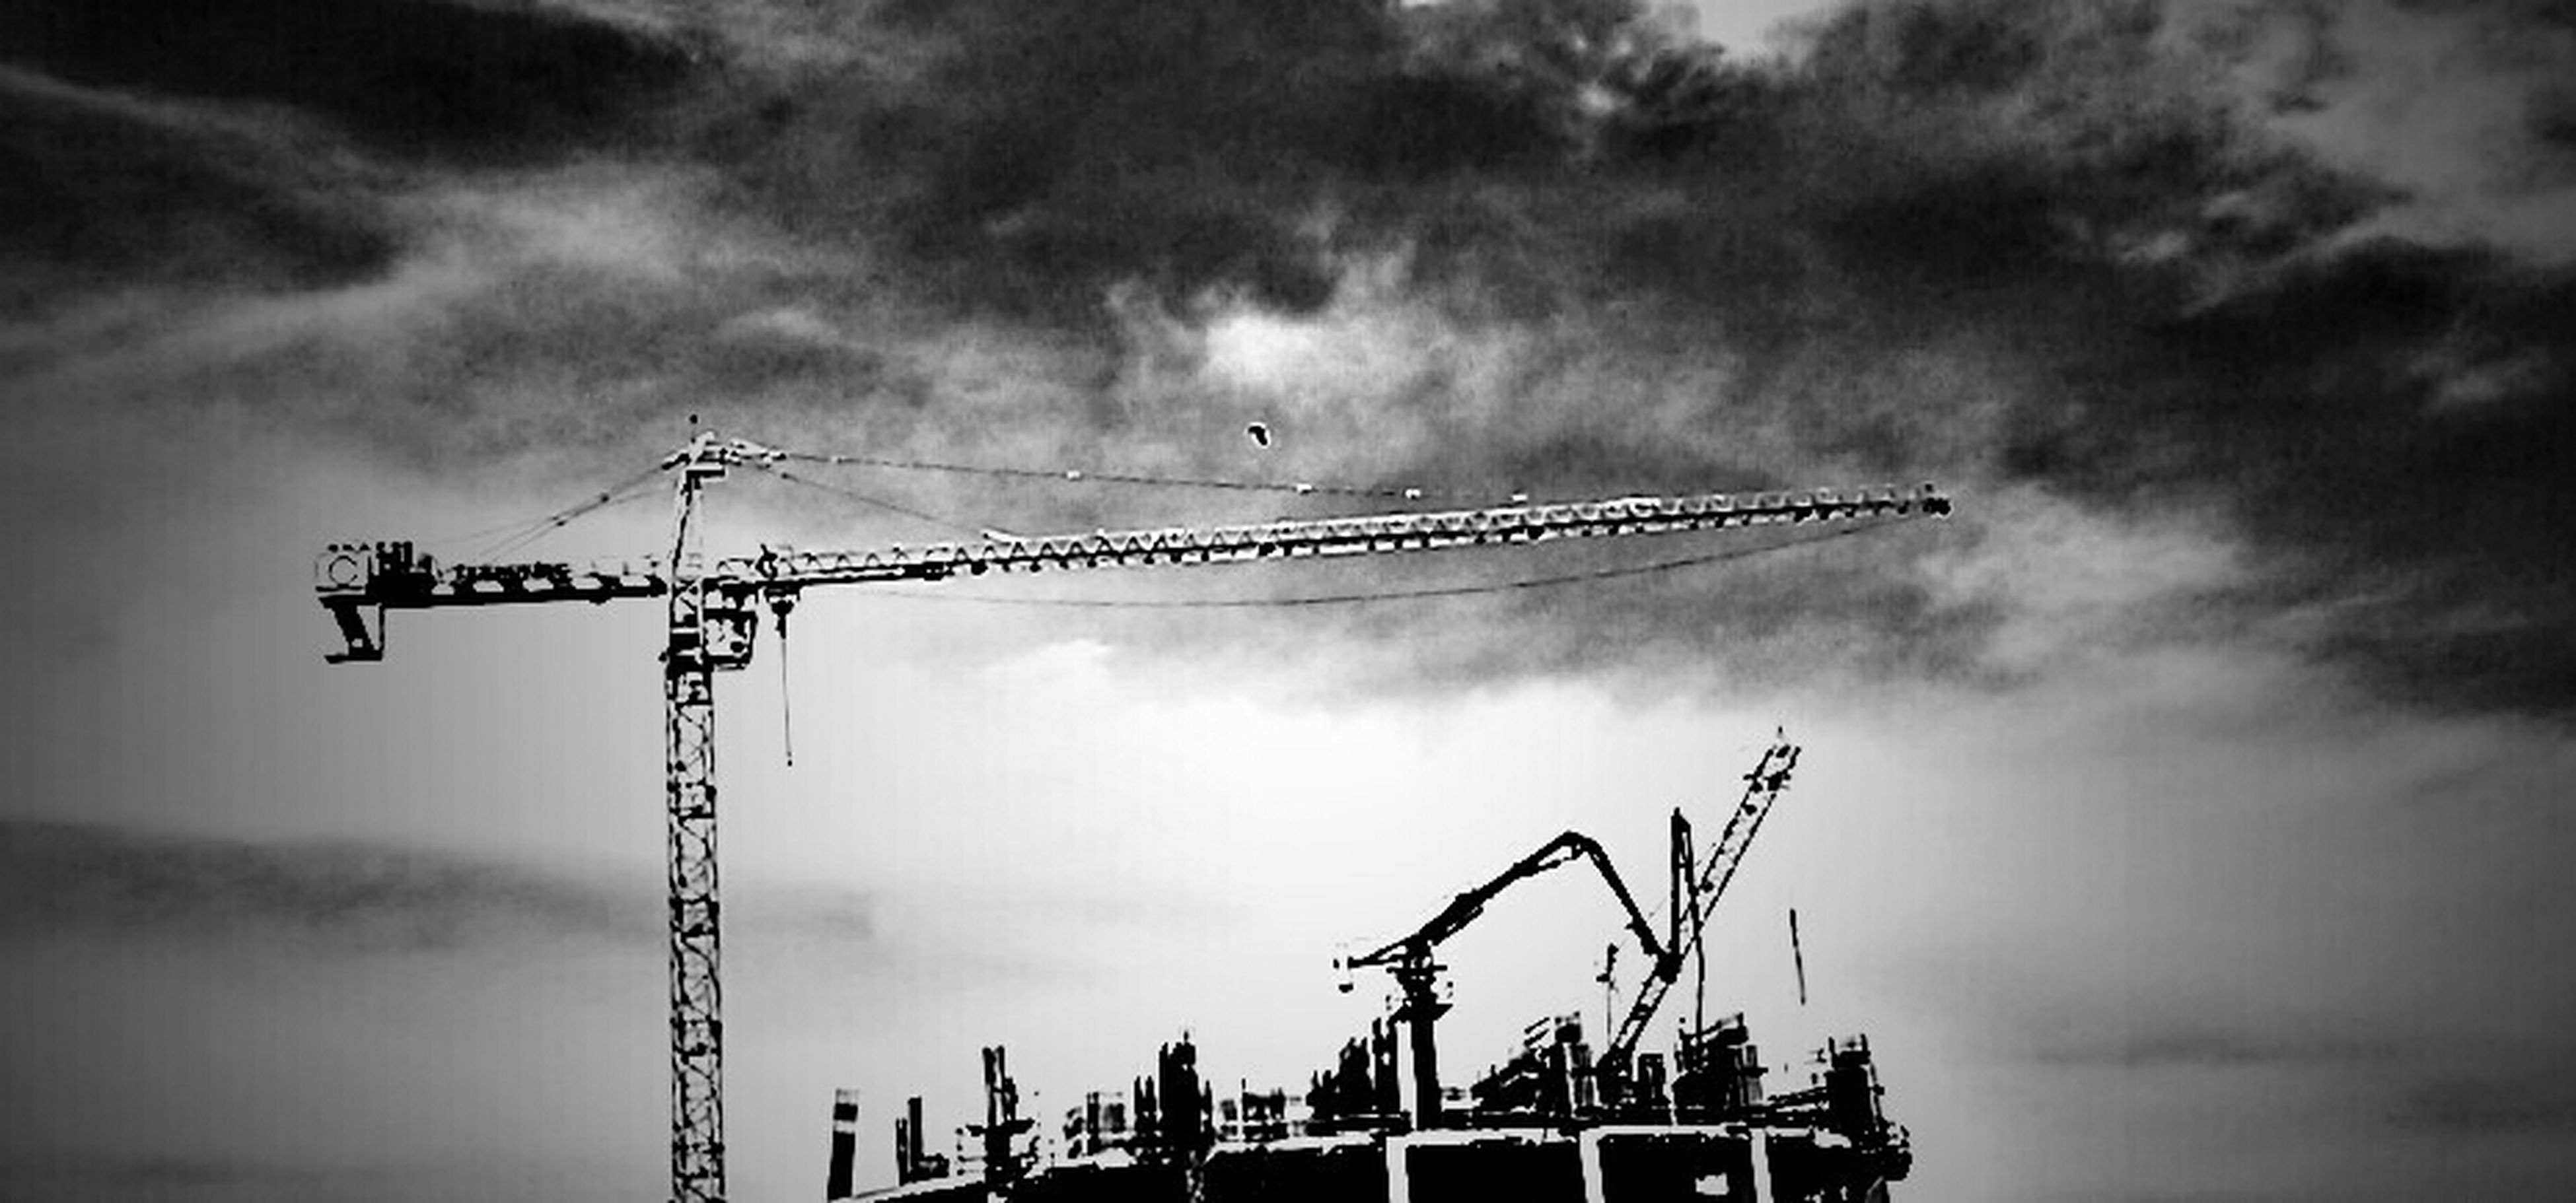 sky, crane - construction machinery, low angle view, cloud - sky, cloudy, construction site, development, crane, fuel and power generation, industry, construction, weather, overcast, cloud, construction industry, alternative energy, wind turbine, environmental conservation, wind power, silhouette